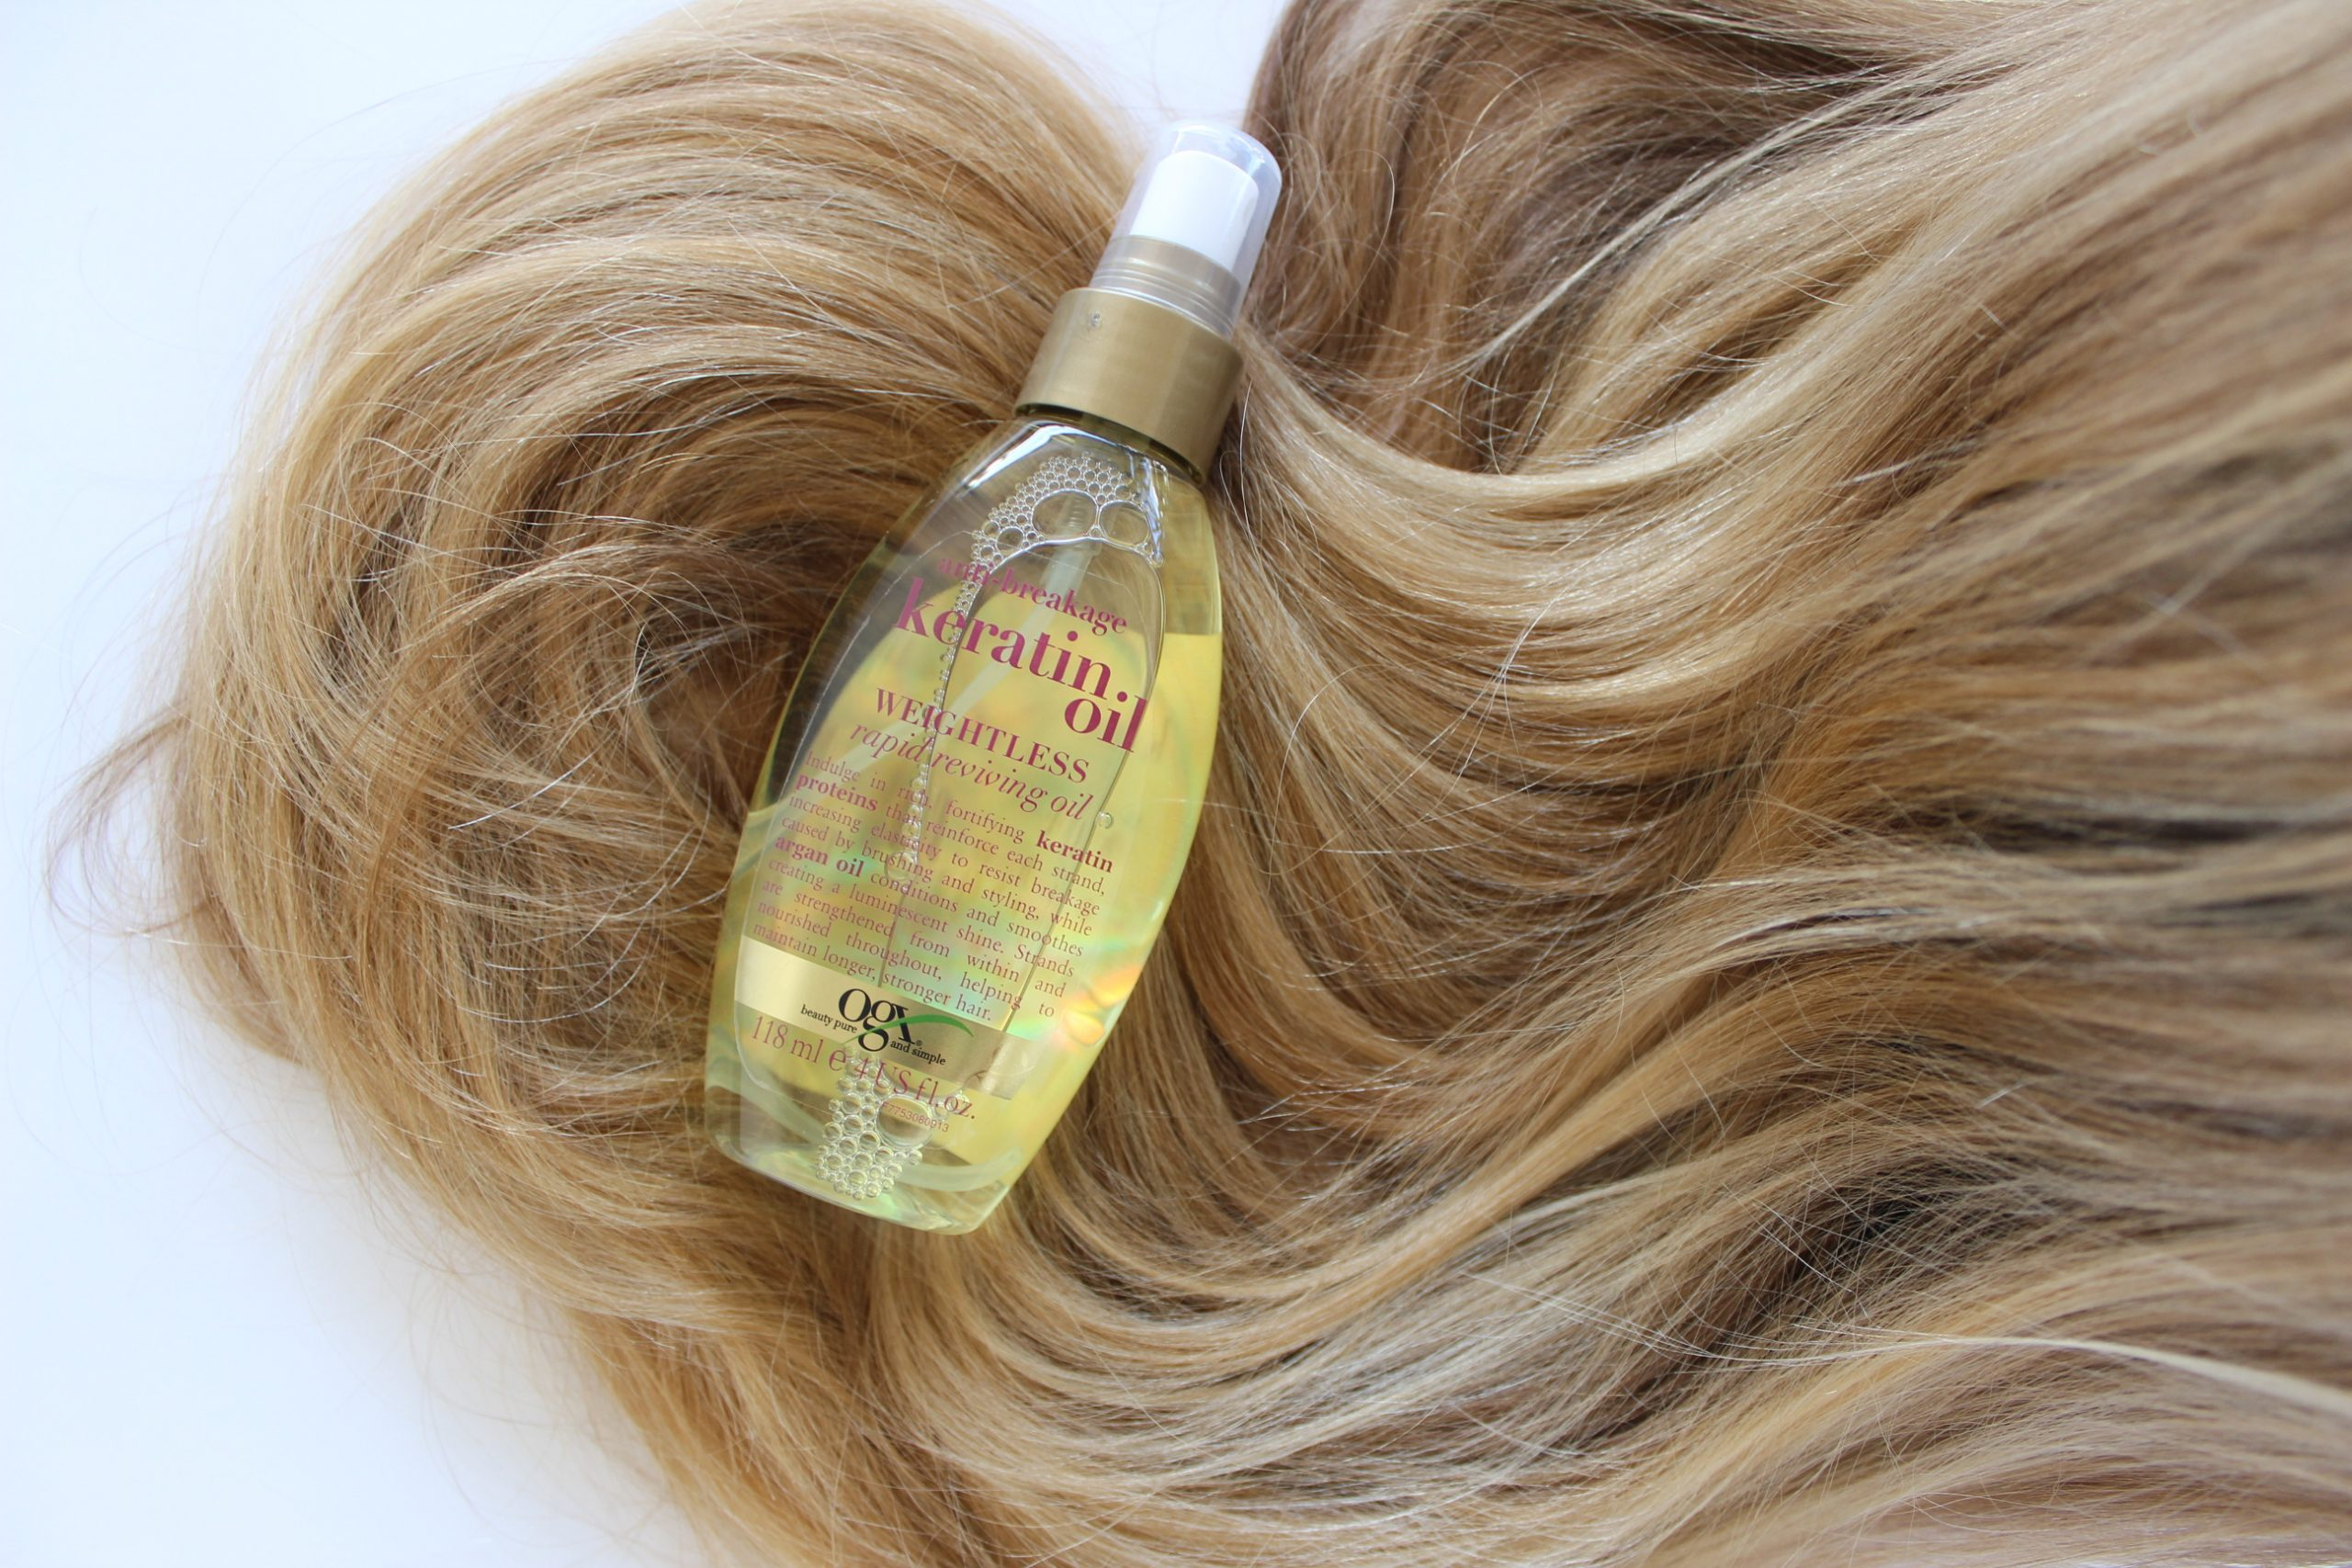 Jenni testet #1: Organix Macadamia Oil Shampoo + Conditioner Haarpflege mit Pepper And Gold